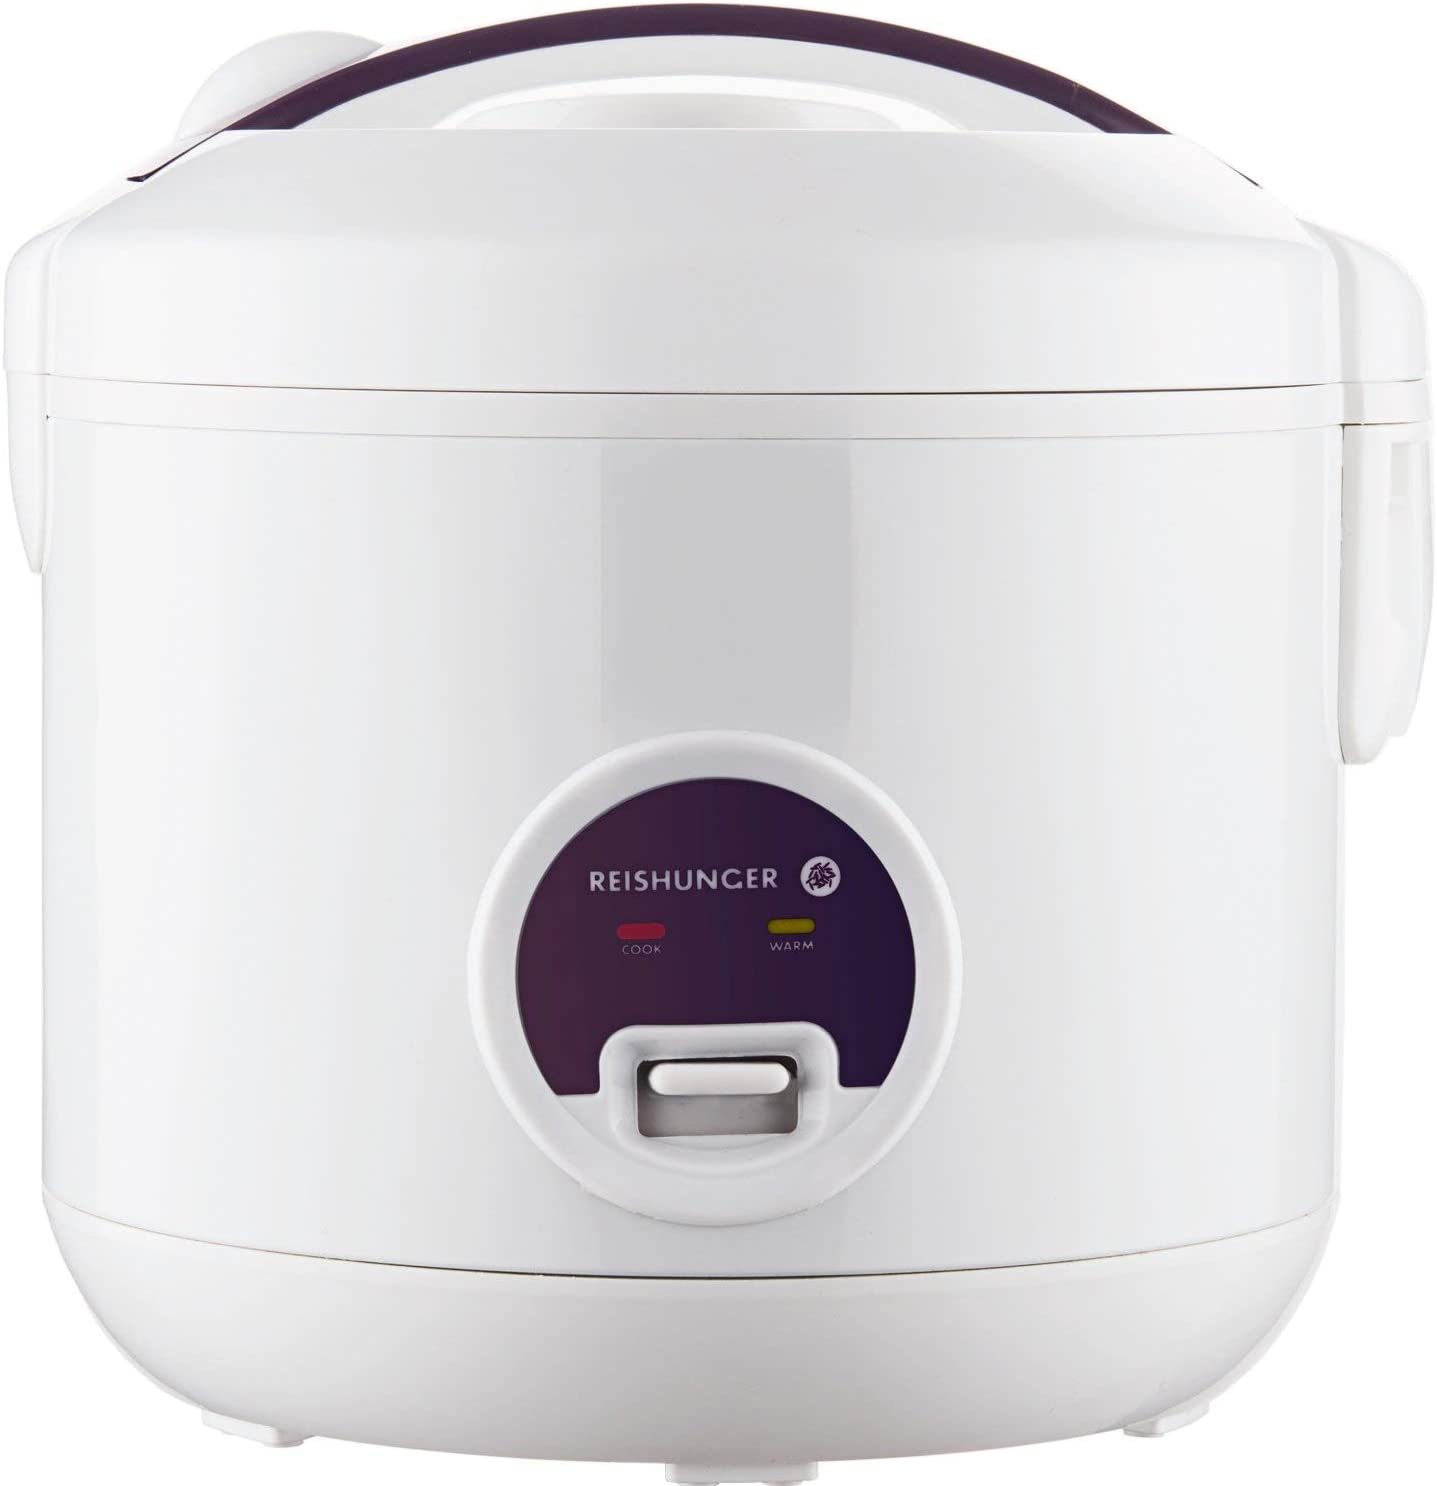 Reishunger Rice Cooker and Steamer - Keep-Warm Function, Premium Quality Inner Pot, Spatula & Measuring Cup - Quick & Easy - Perfect Rice for 1-6 Persons - 1.2l/500W/220V